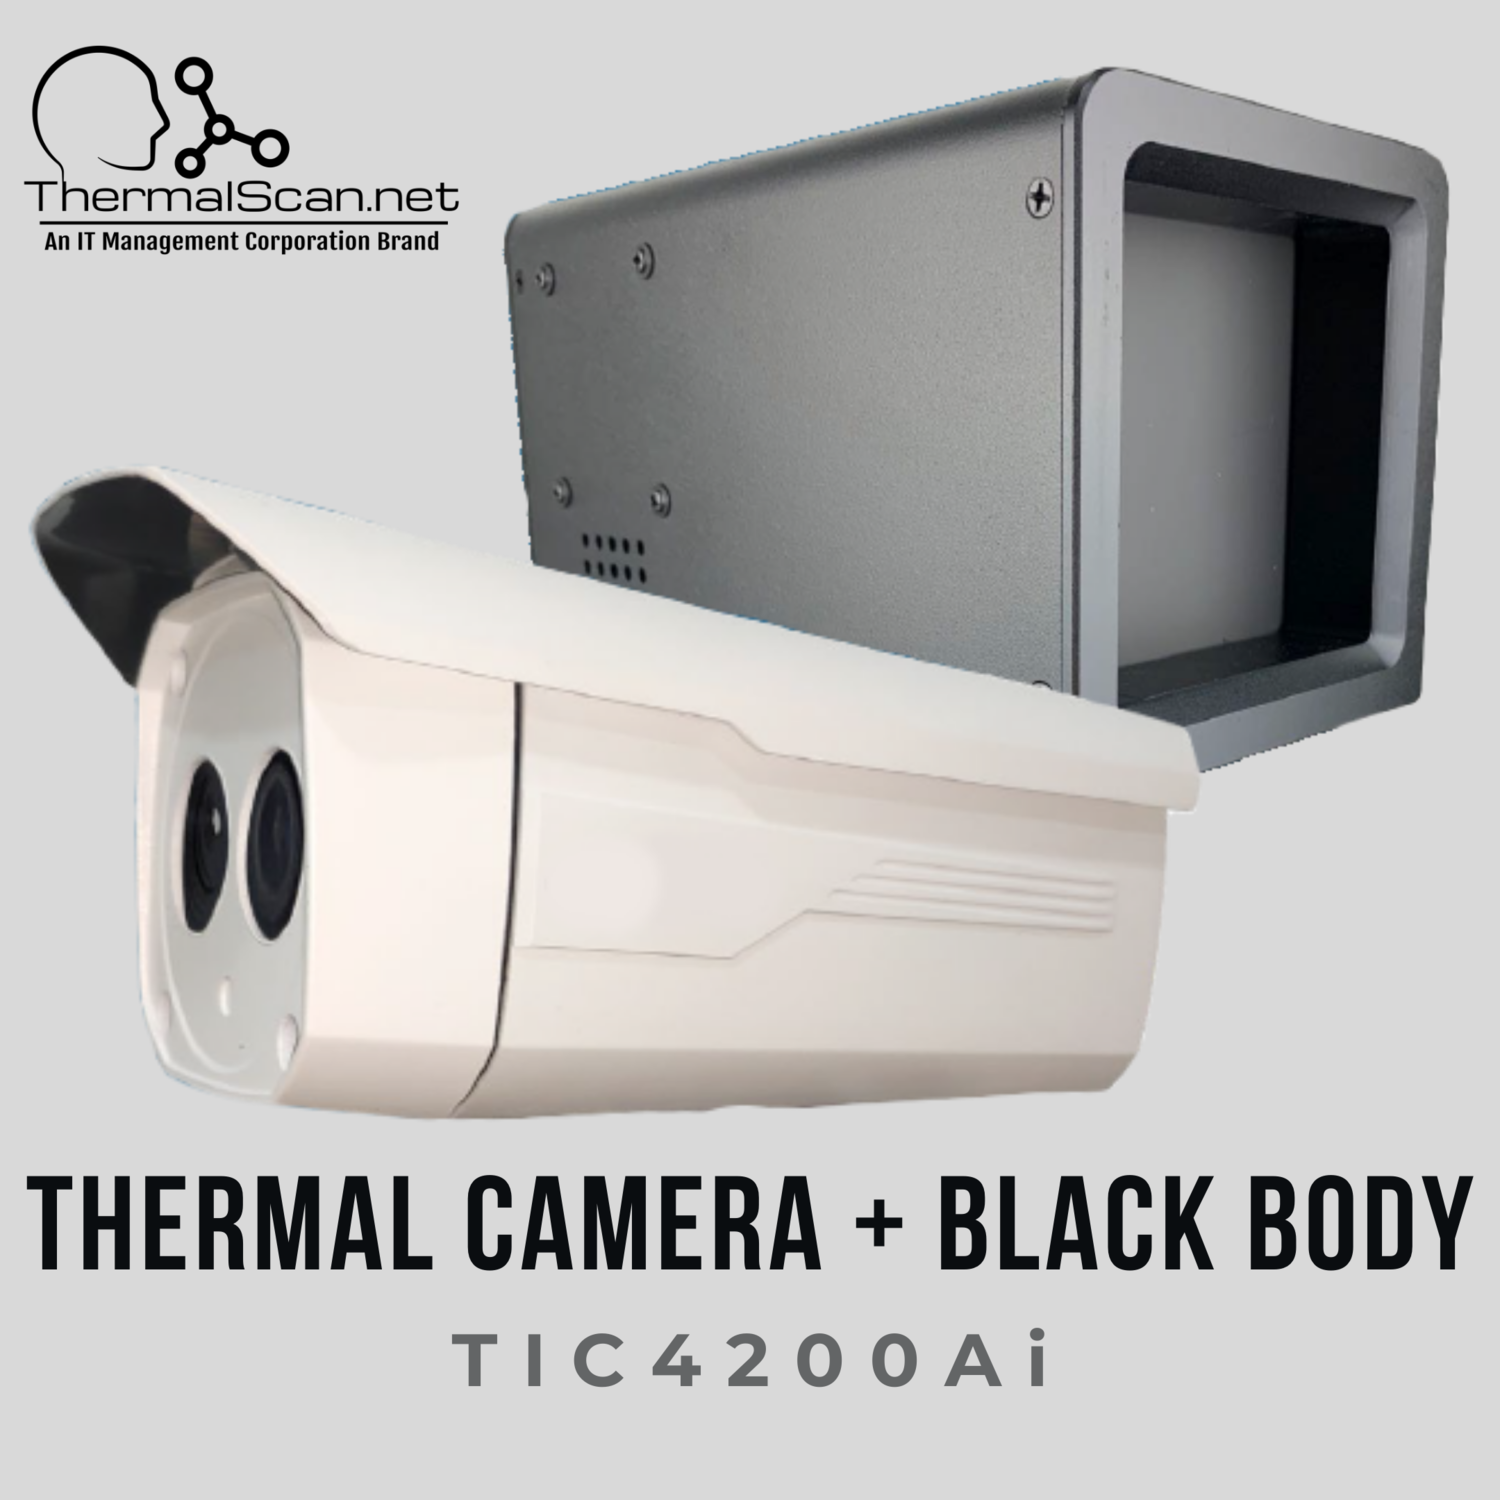 Thermal Imaging Camera + Black Body